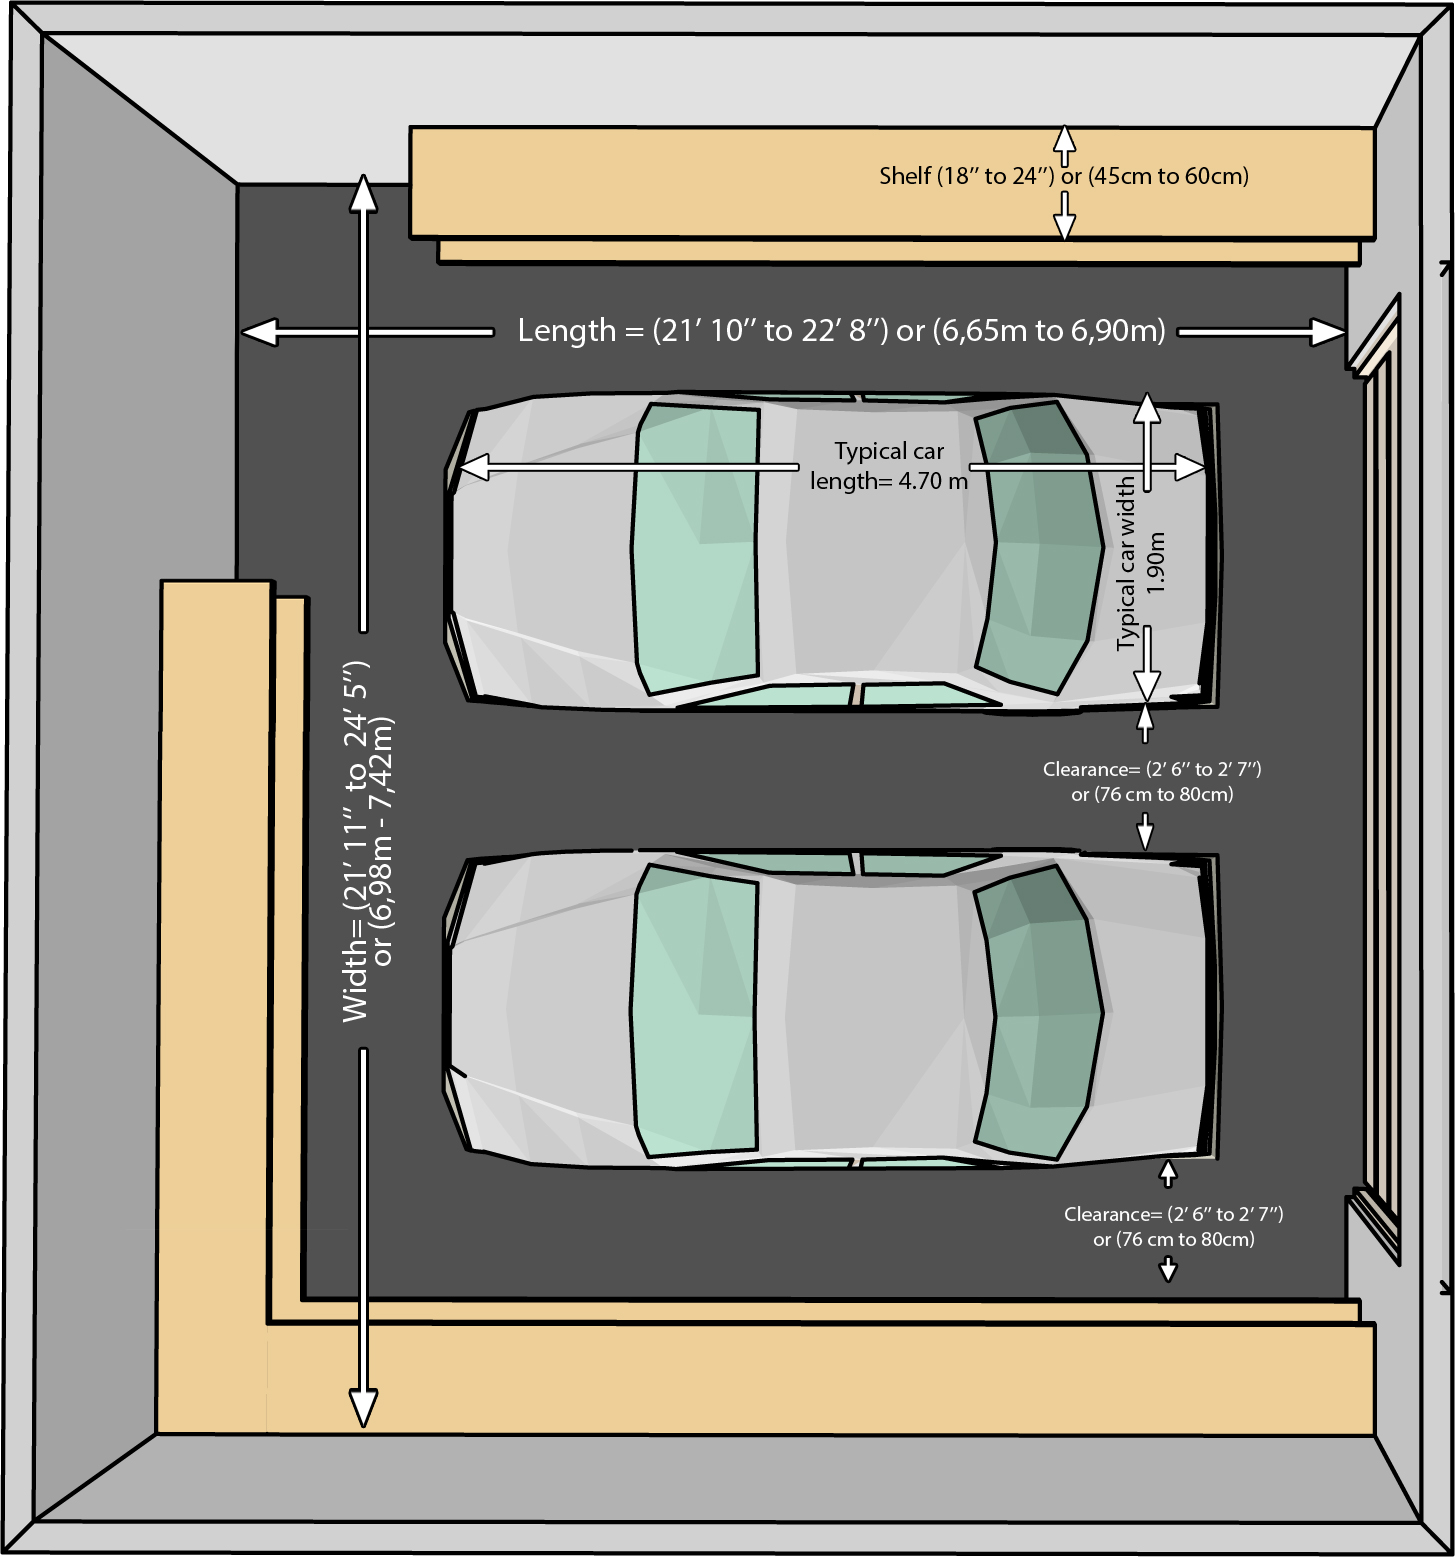 Uk Home Layout Design Plan The Dimensions Of An One Car And A Two Car Garage